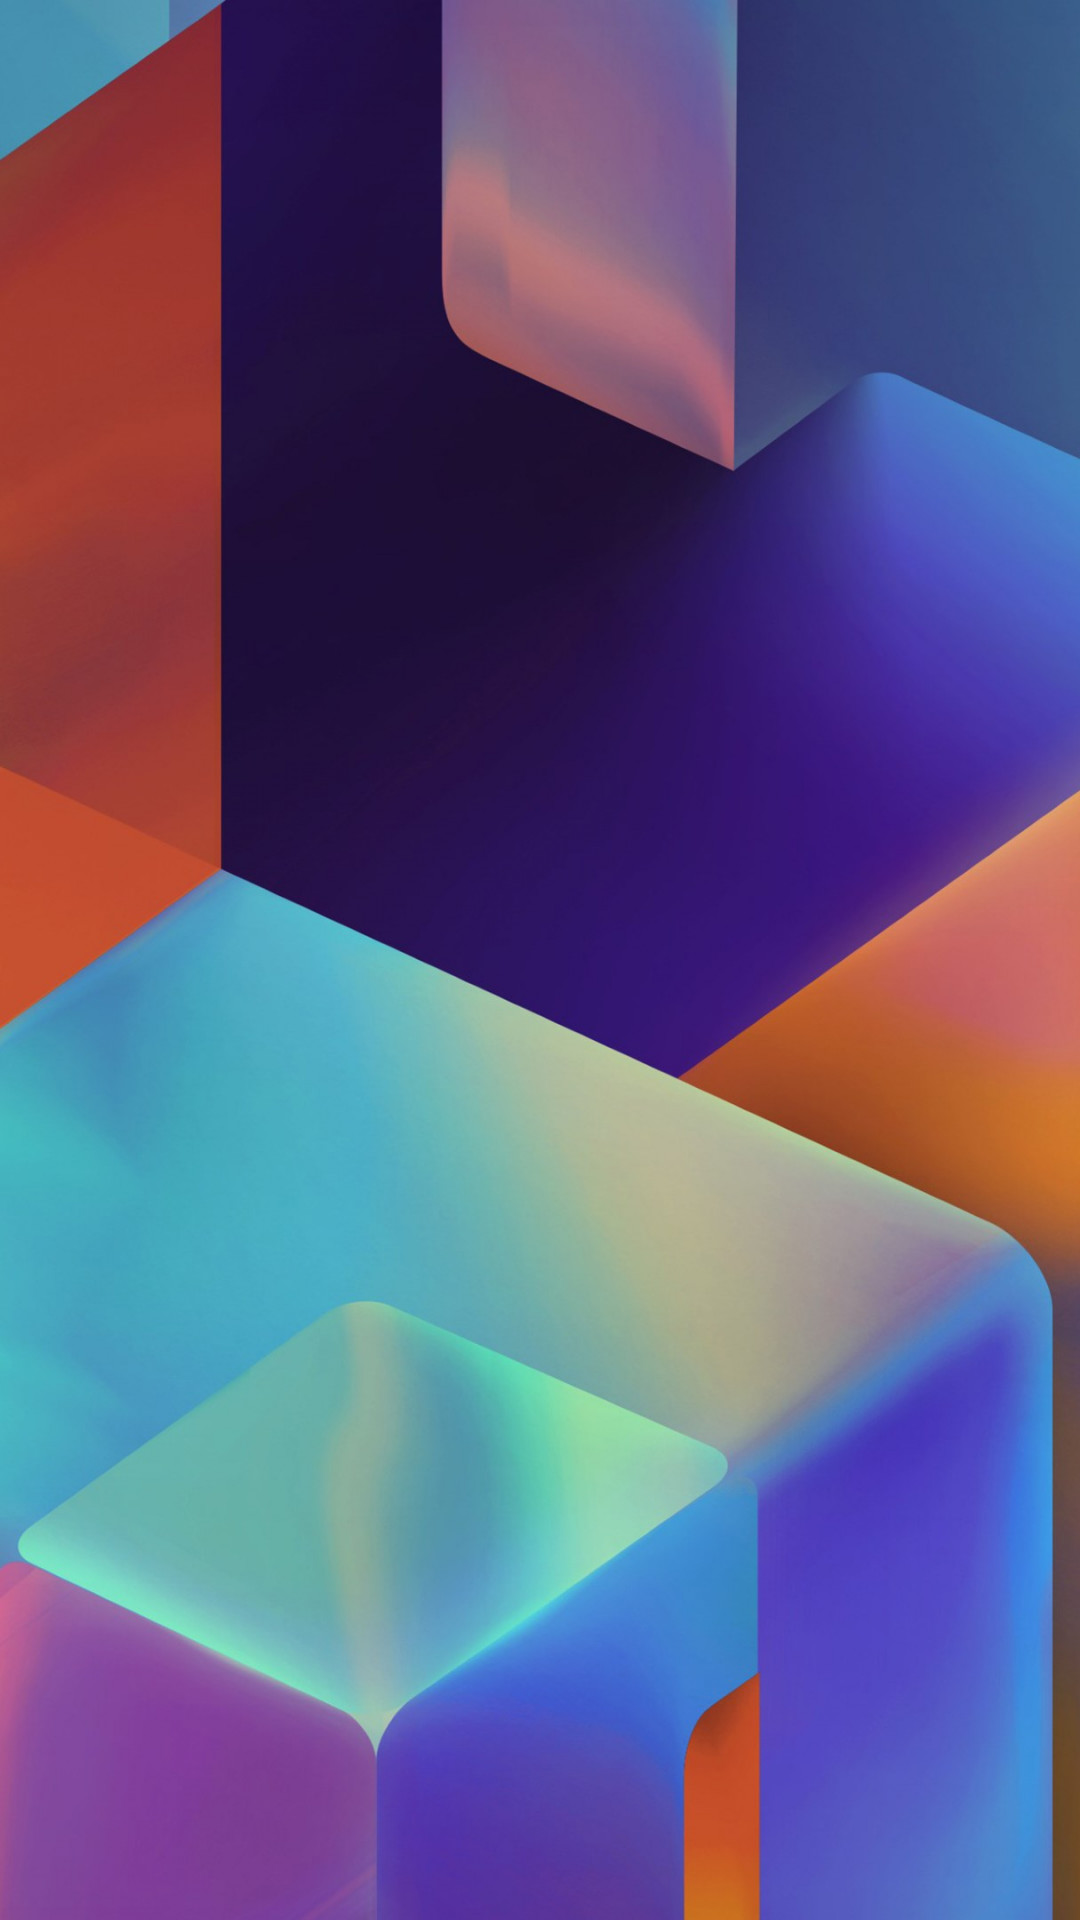 Geometric 3D shapes | 1080x1920 wallpaper